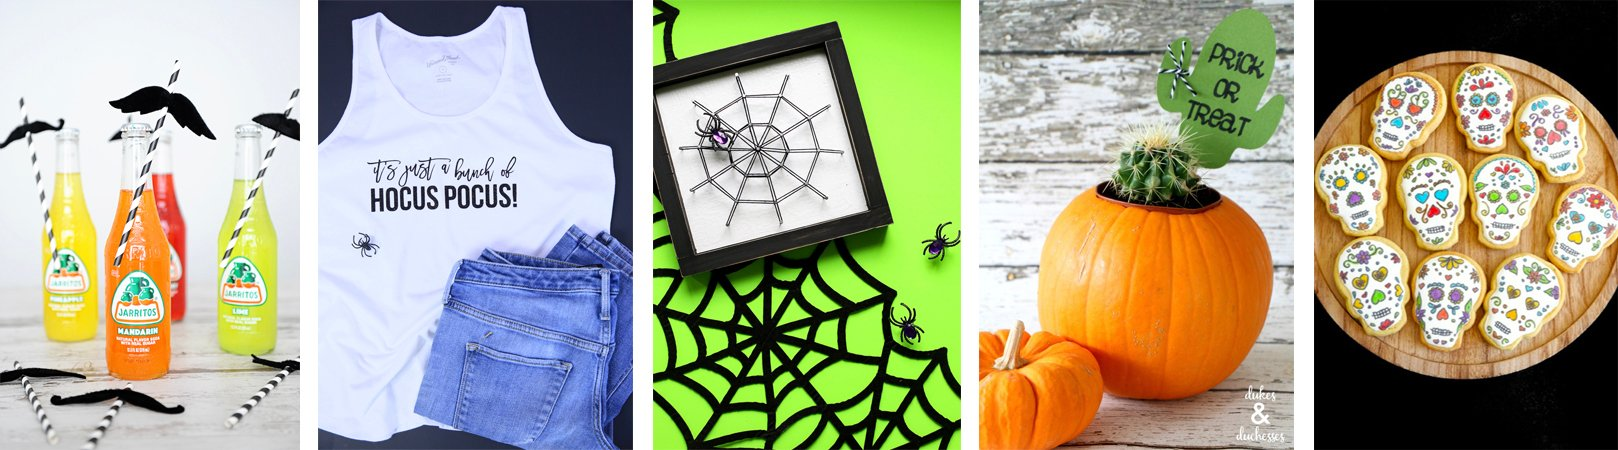 Halloween party Ideas, Recipes and Crafts via @birdsparty.com @birdsparty #halloween #diy #crafts #recipes